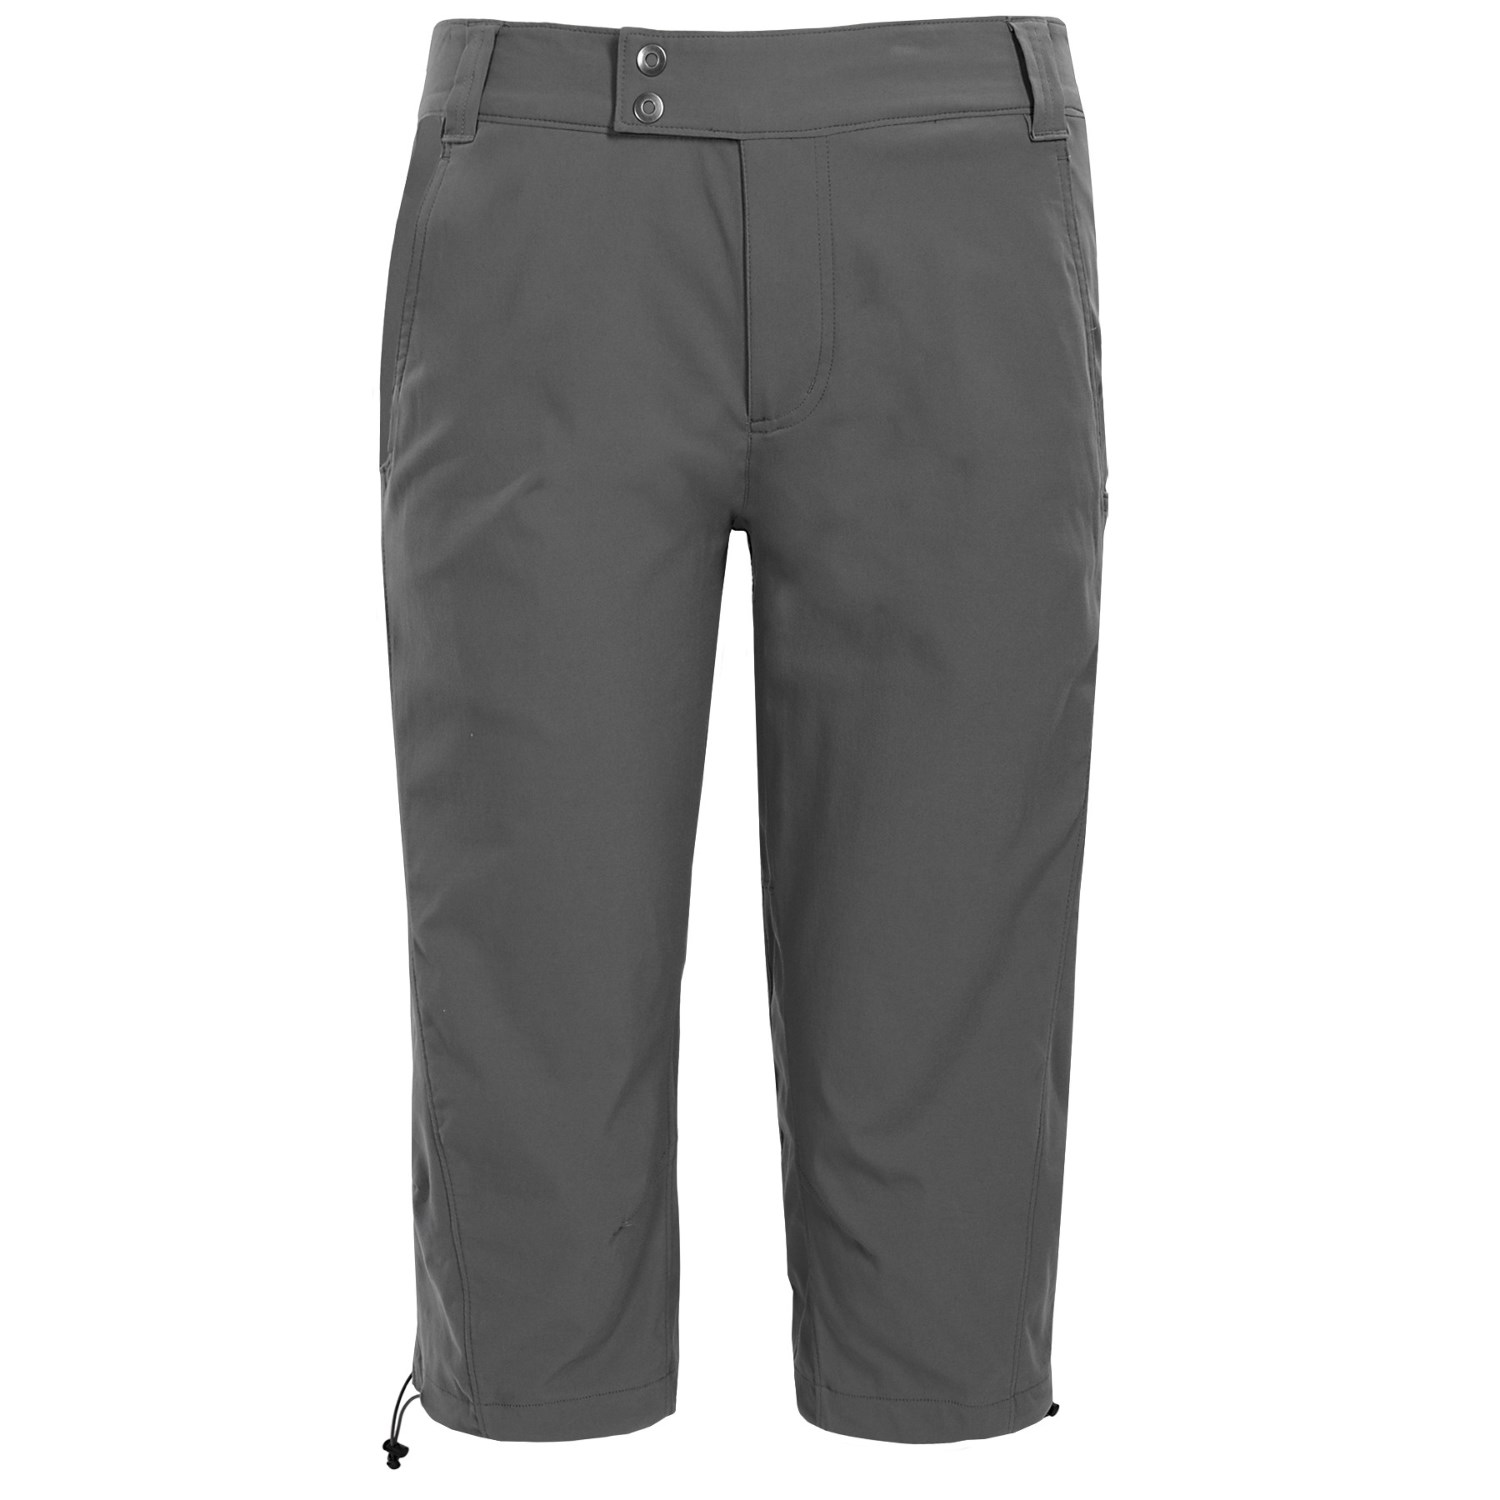 Excellent Hit The Trails With Ease While Wearing The Columbia Sportswear Womens Saturday Trail II Knee Pants UPF 50 Sun Protection Paired With OmniShield Advanced Moisture And Stain Repellency Ensure That You Stay Protected As You Go A